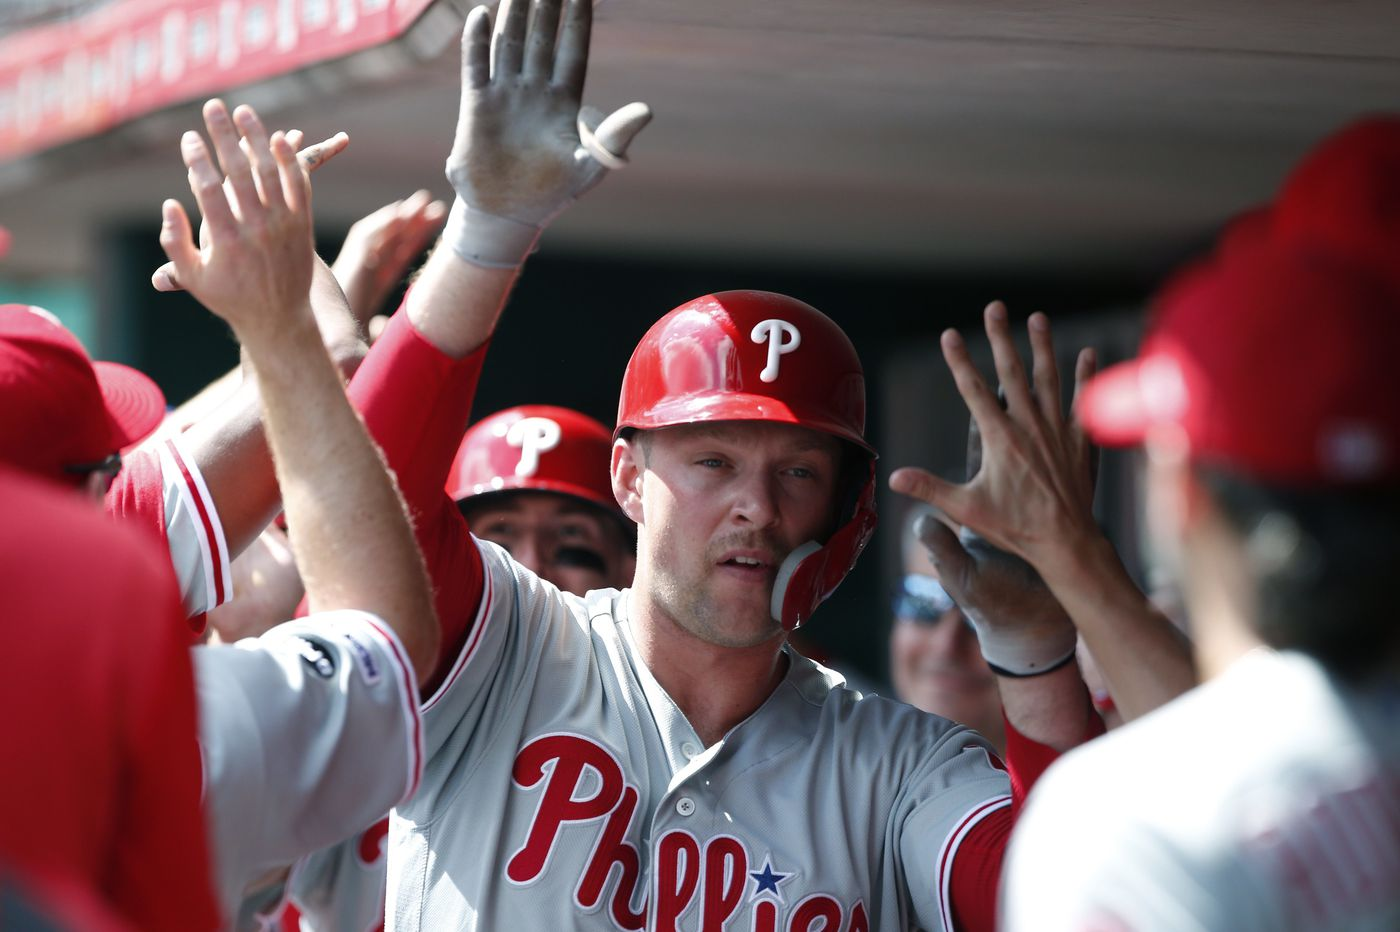 Phillies ride four homers, including two by Rhys Hoskins, to a Labor Day rout of Reds